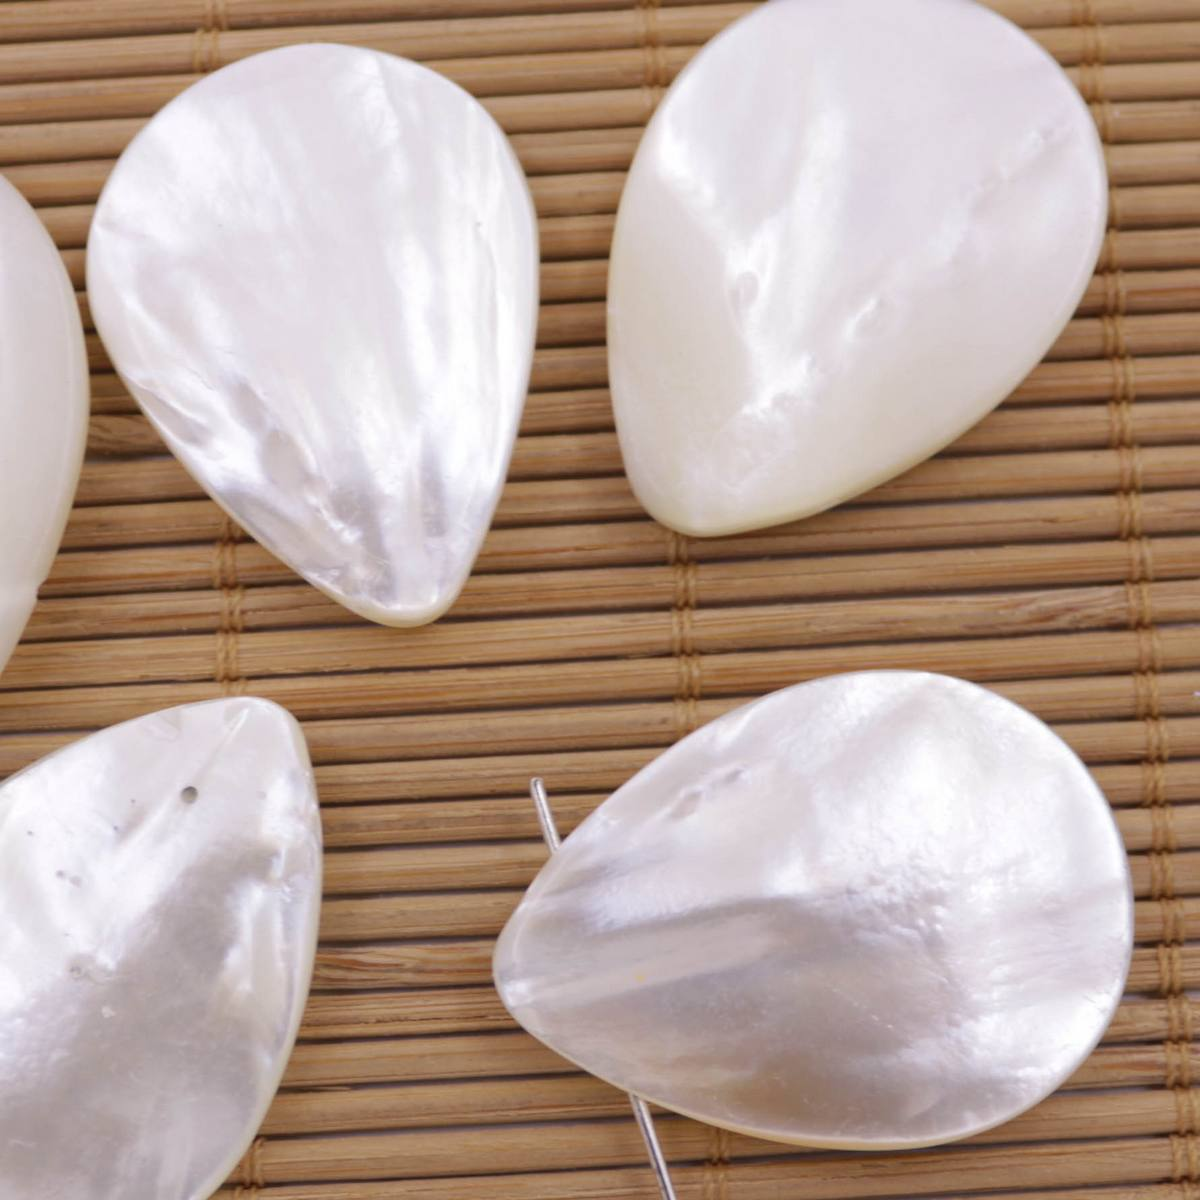 5 Pcs Teardrop Sea Shell Natural White Mother Of Pearl Top Hole Choose 18mm 35mm Ebay